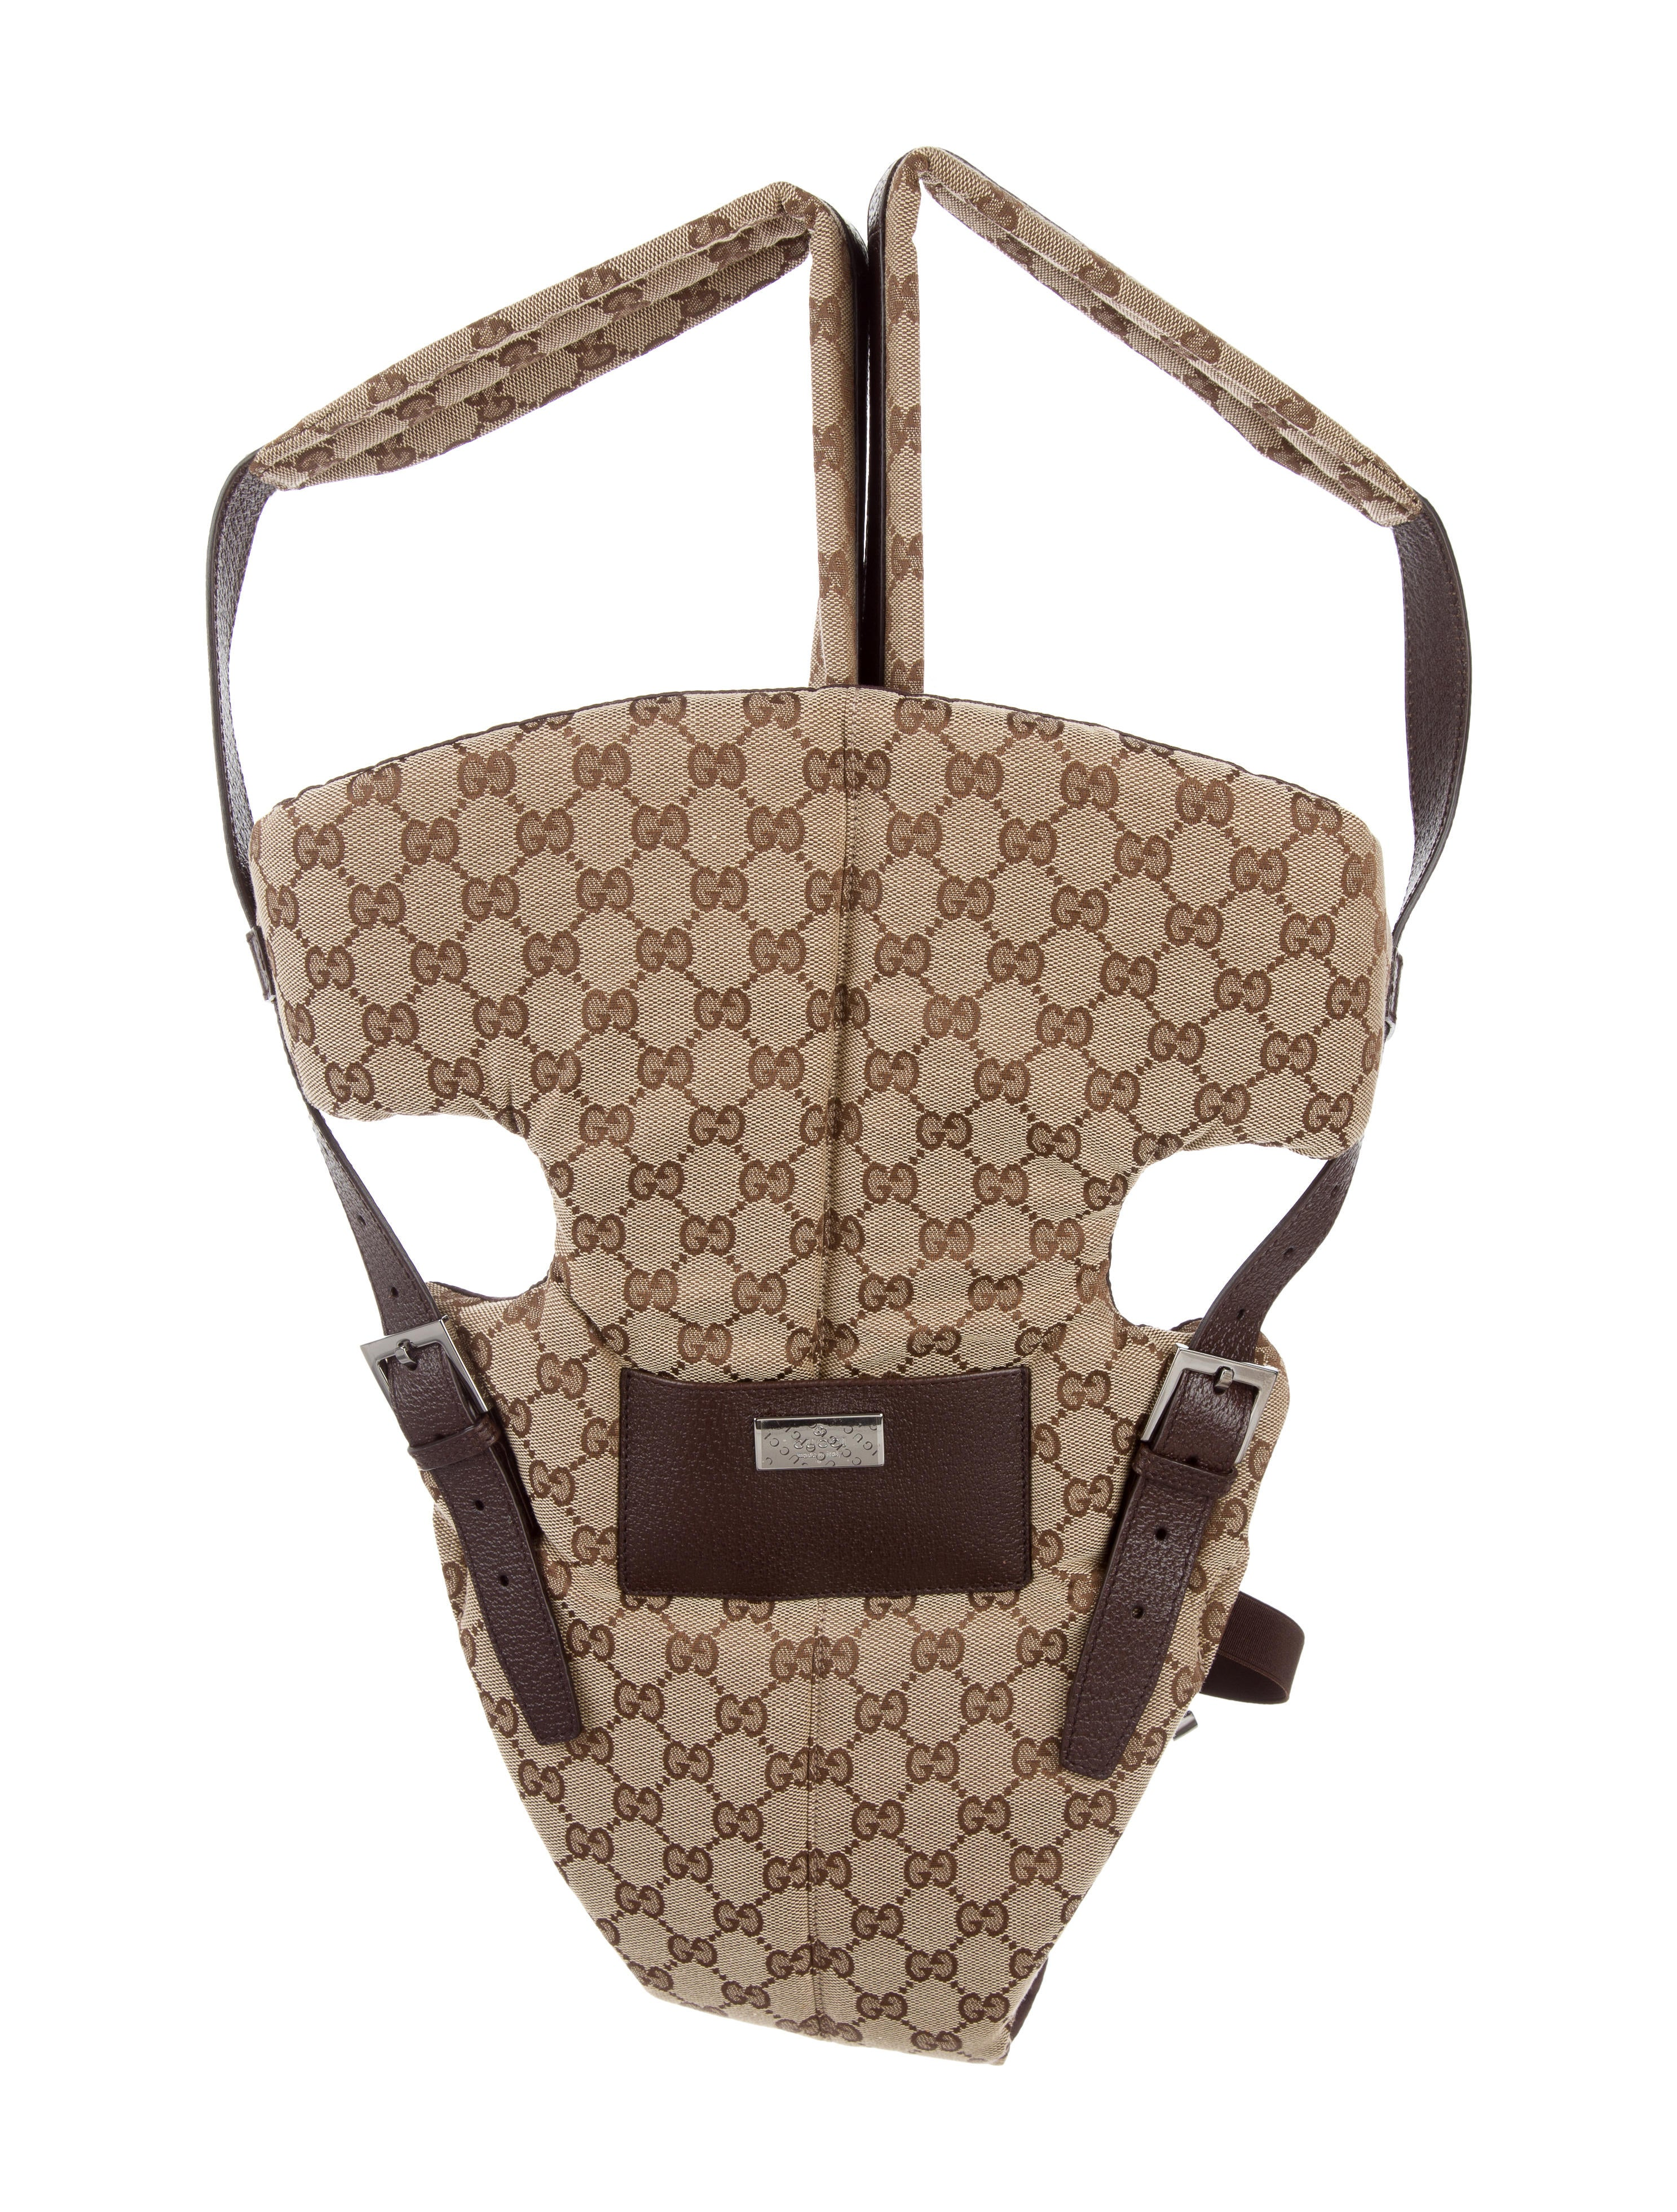 09a9f3902d1 Gucci GG Baby Carrier w  Tags - Baby Gear - GUC165871